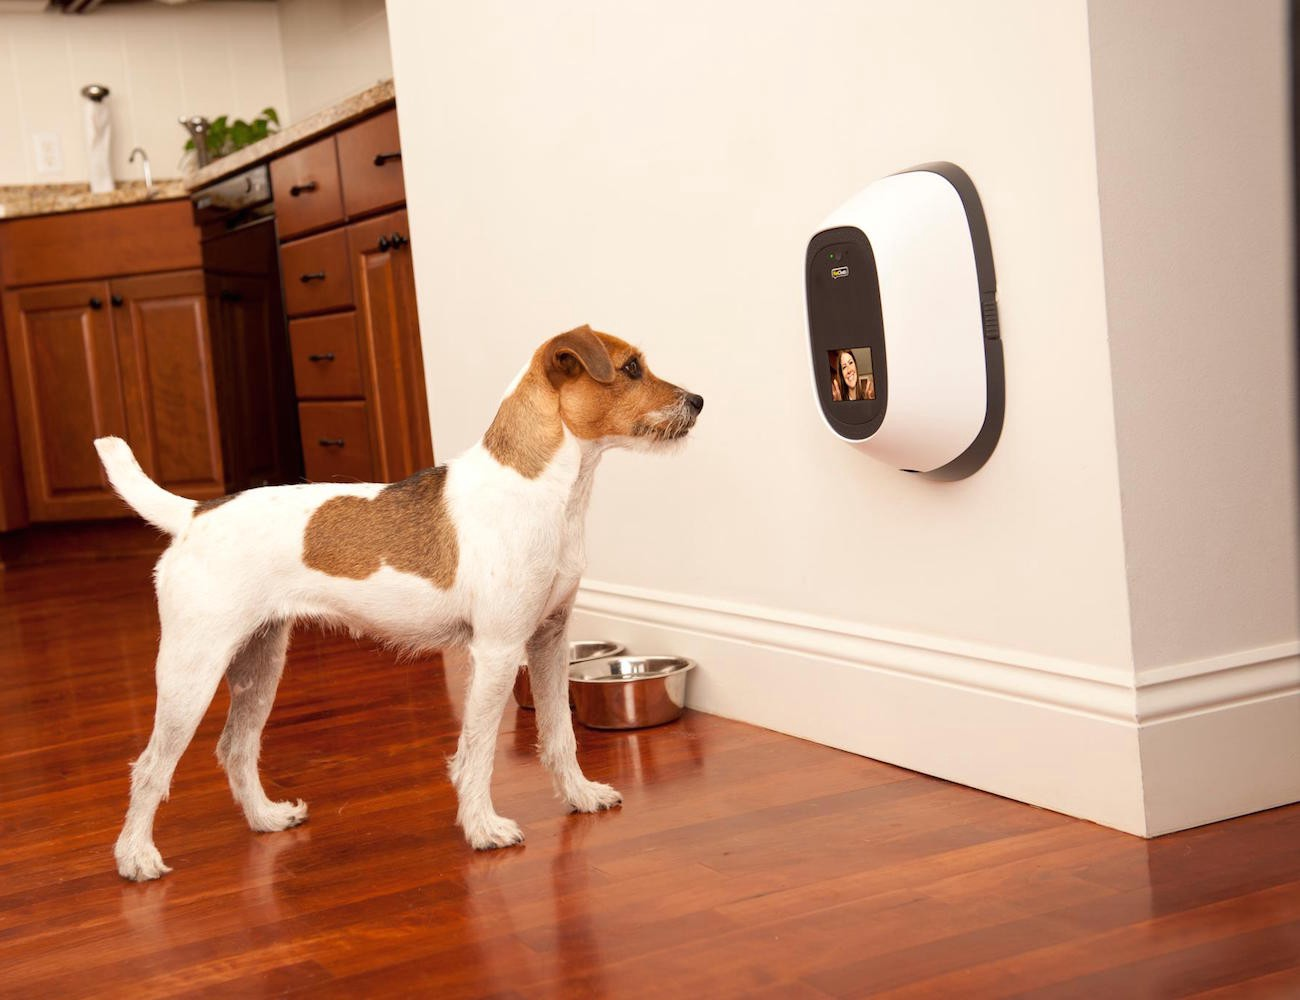 Smart Home Gadgets 12 smart home gadgets to keep you safe and secure – gadget flow